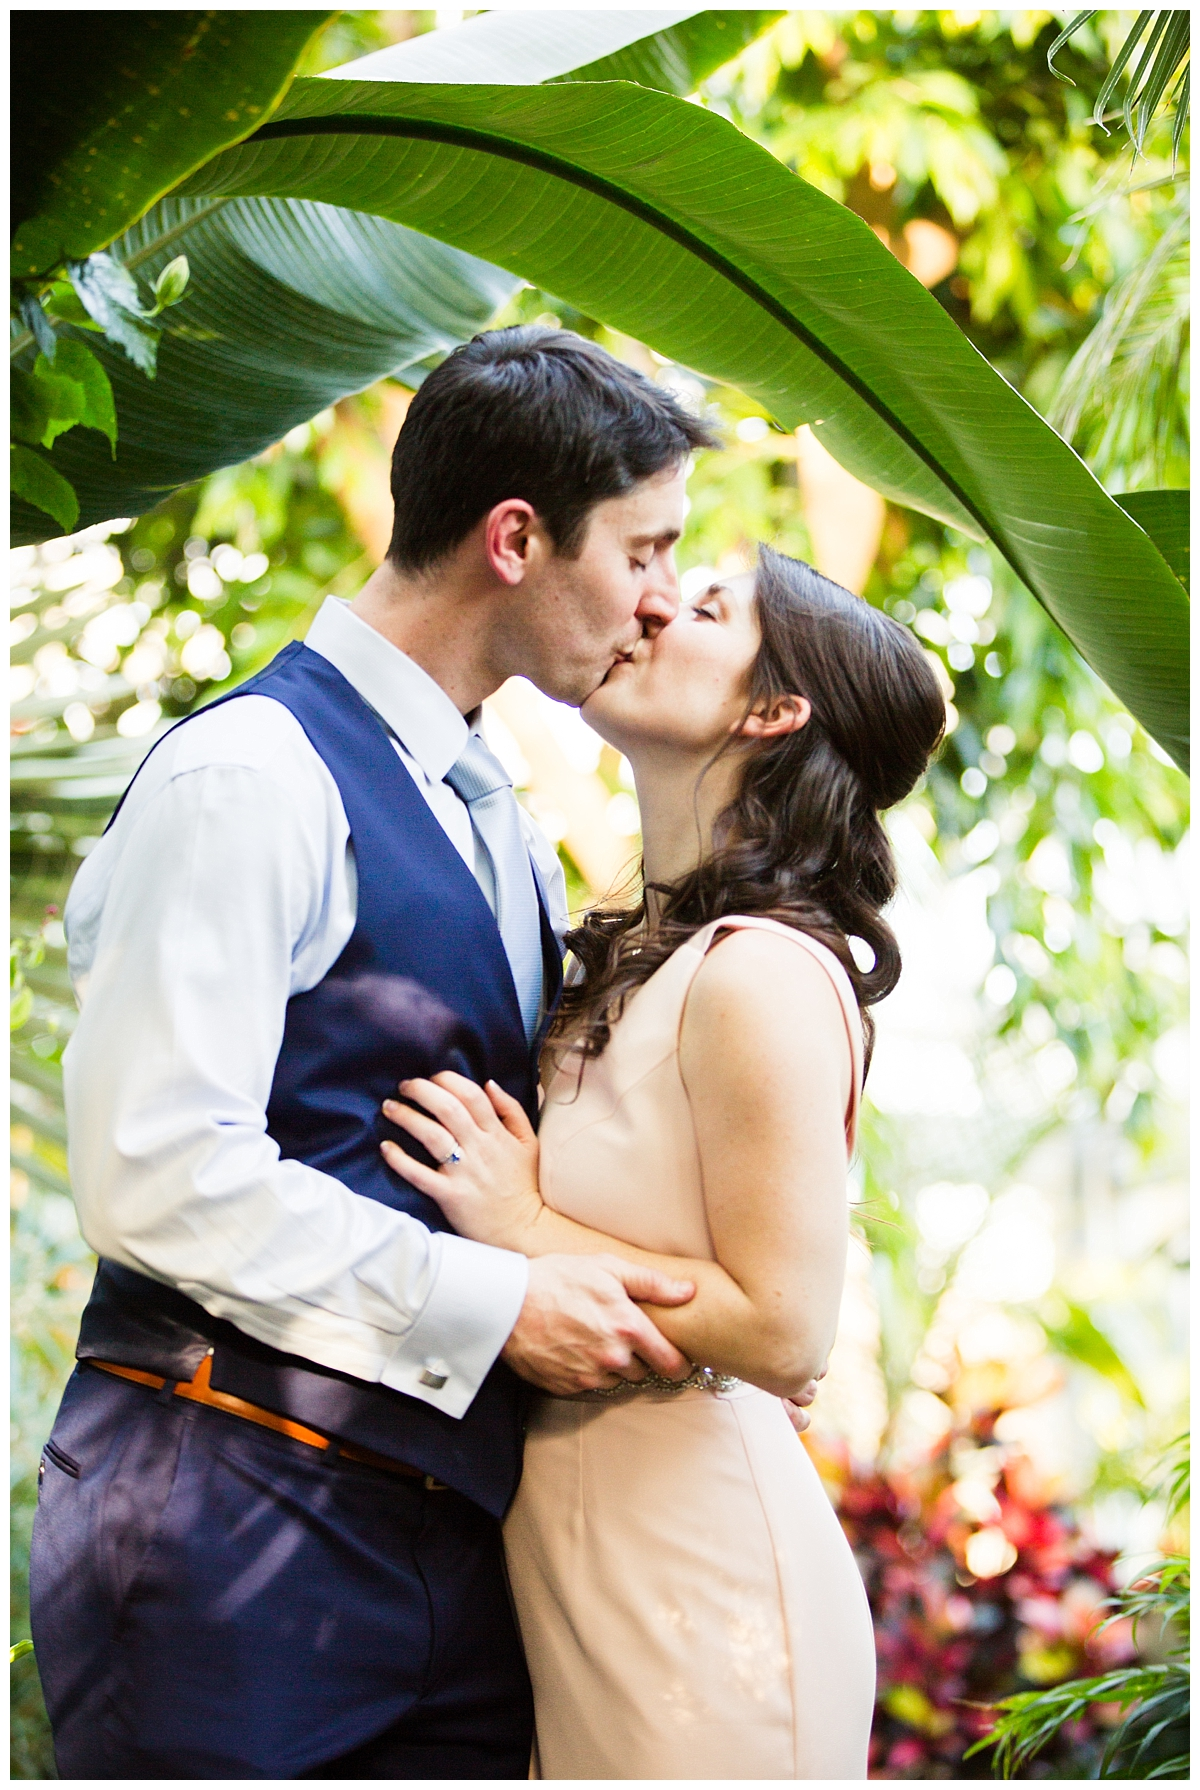 First kiss, intimate wedding photography, elopement photographer